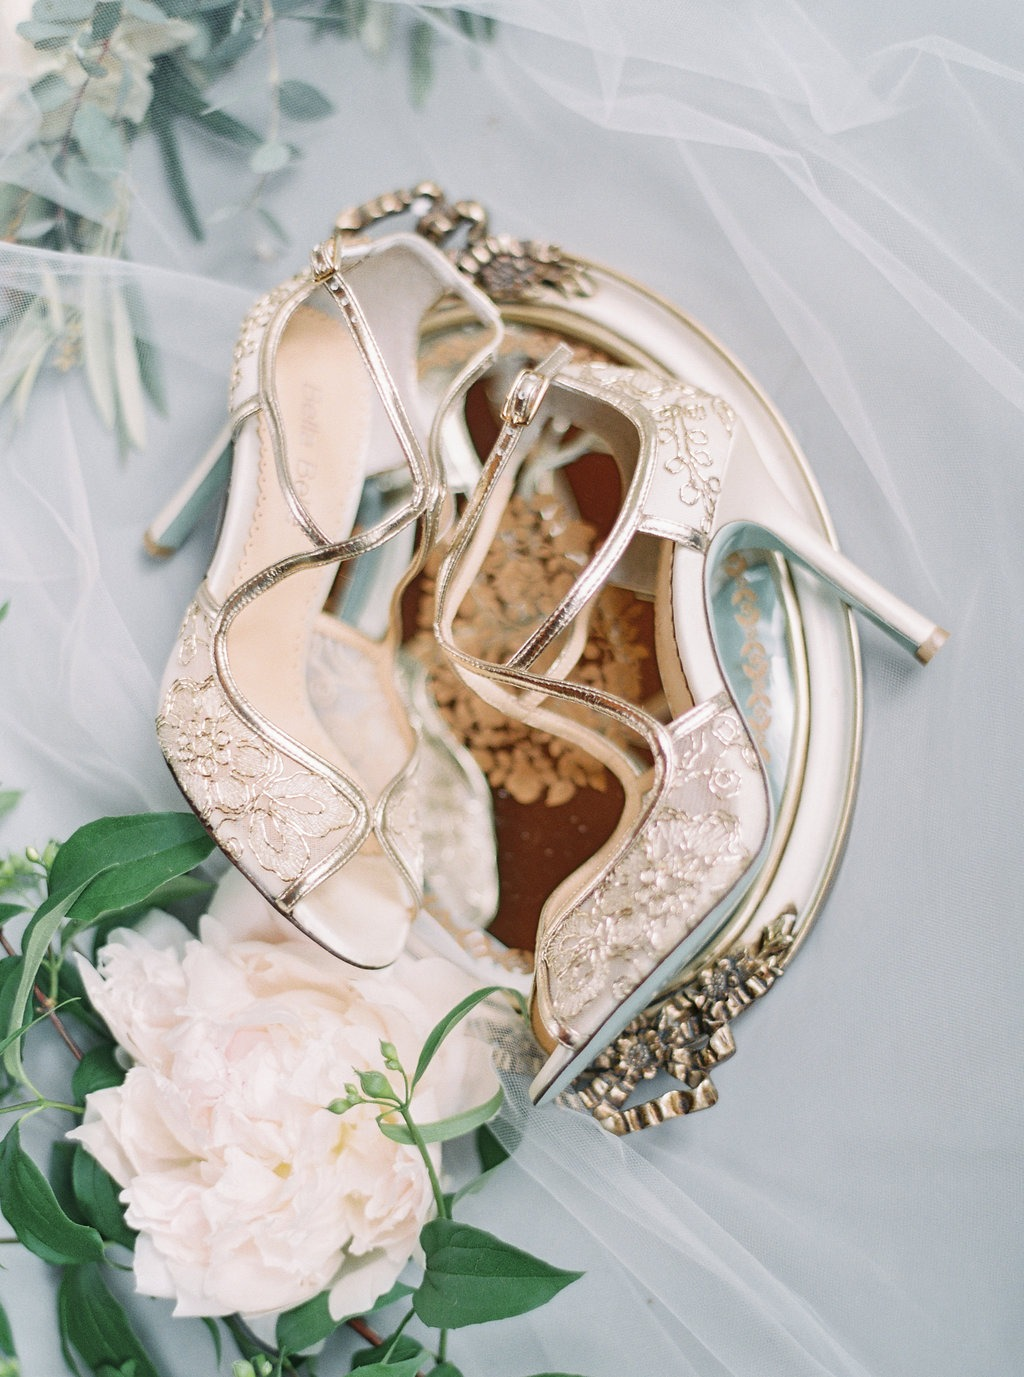 The perfect mix of regal, vintage and elegance, featuring the Tess gold wedding heel. See more at @bellabelleshoes